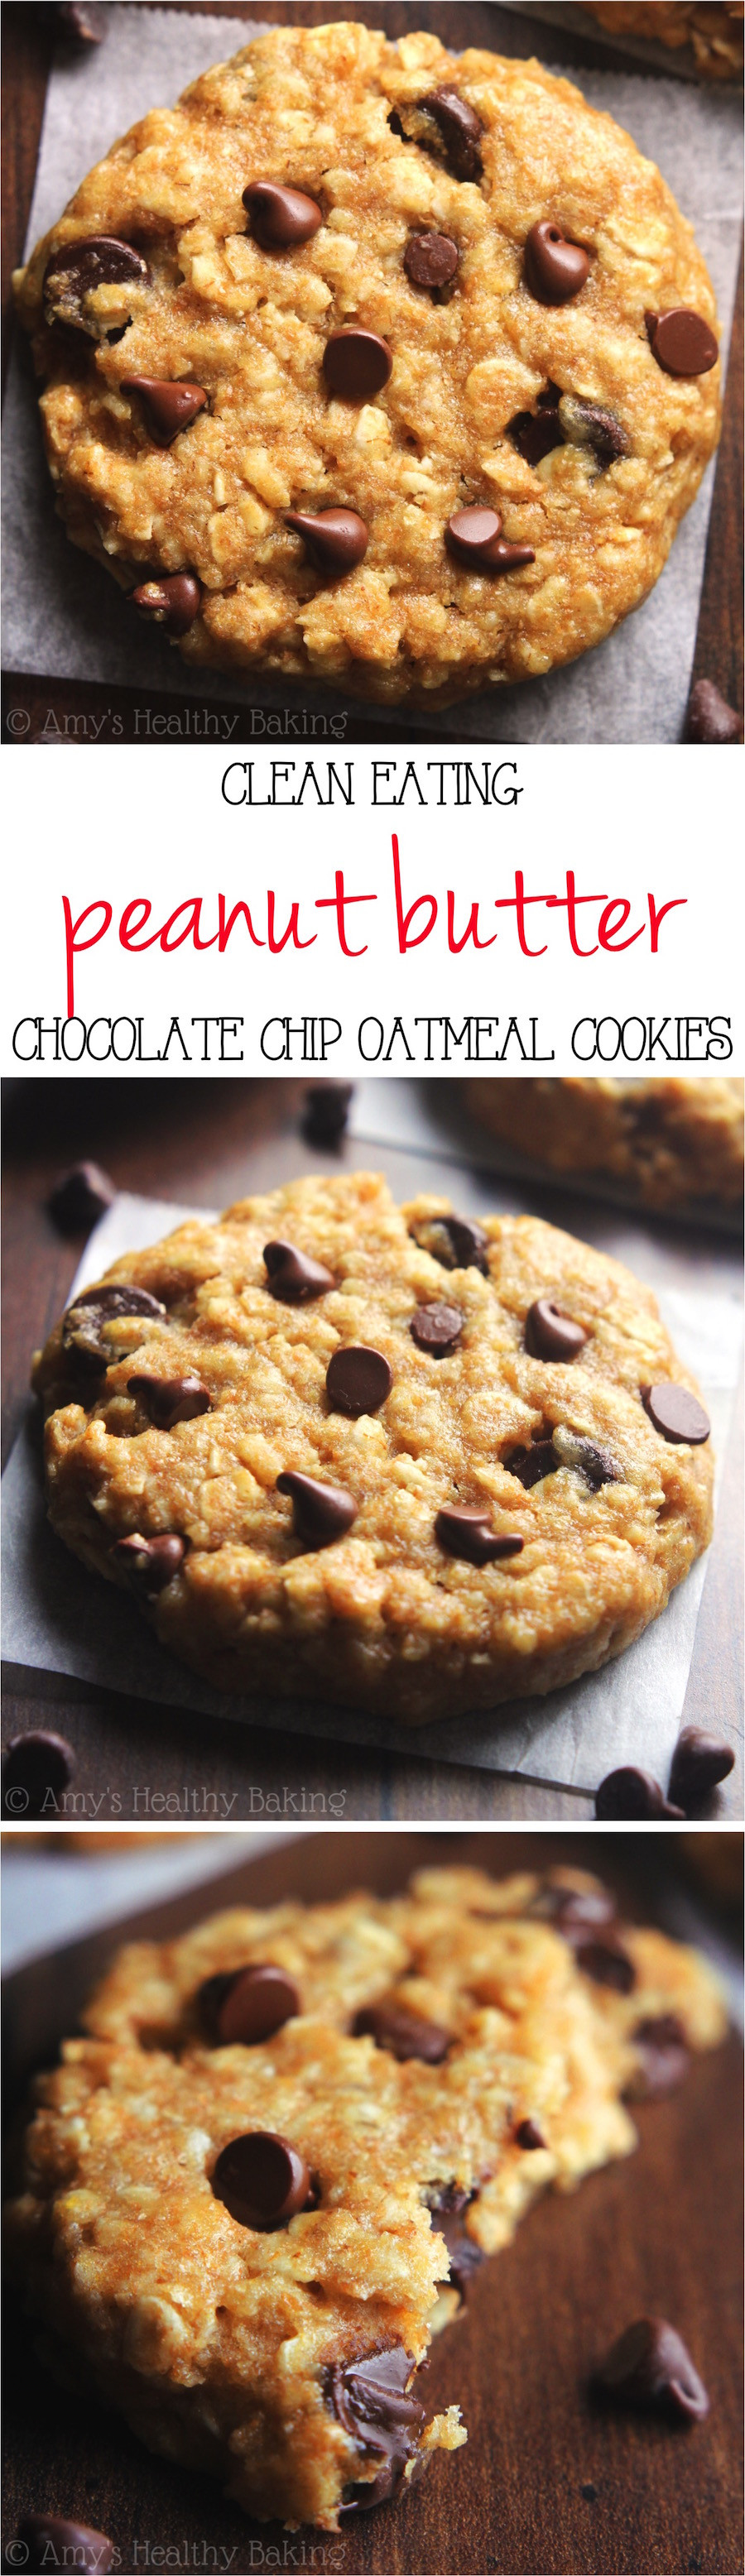 Healthy Oatmeal Peanut butter Chocolate Chip Cookies the top 20 Ideas About Healthy Oatmeal Peanut butter Chocolate Chip Cookies Recipe